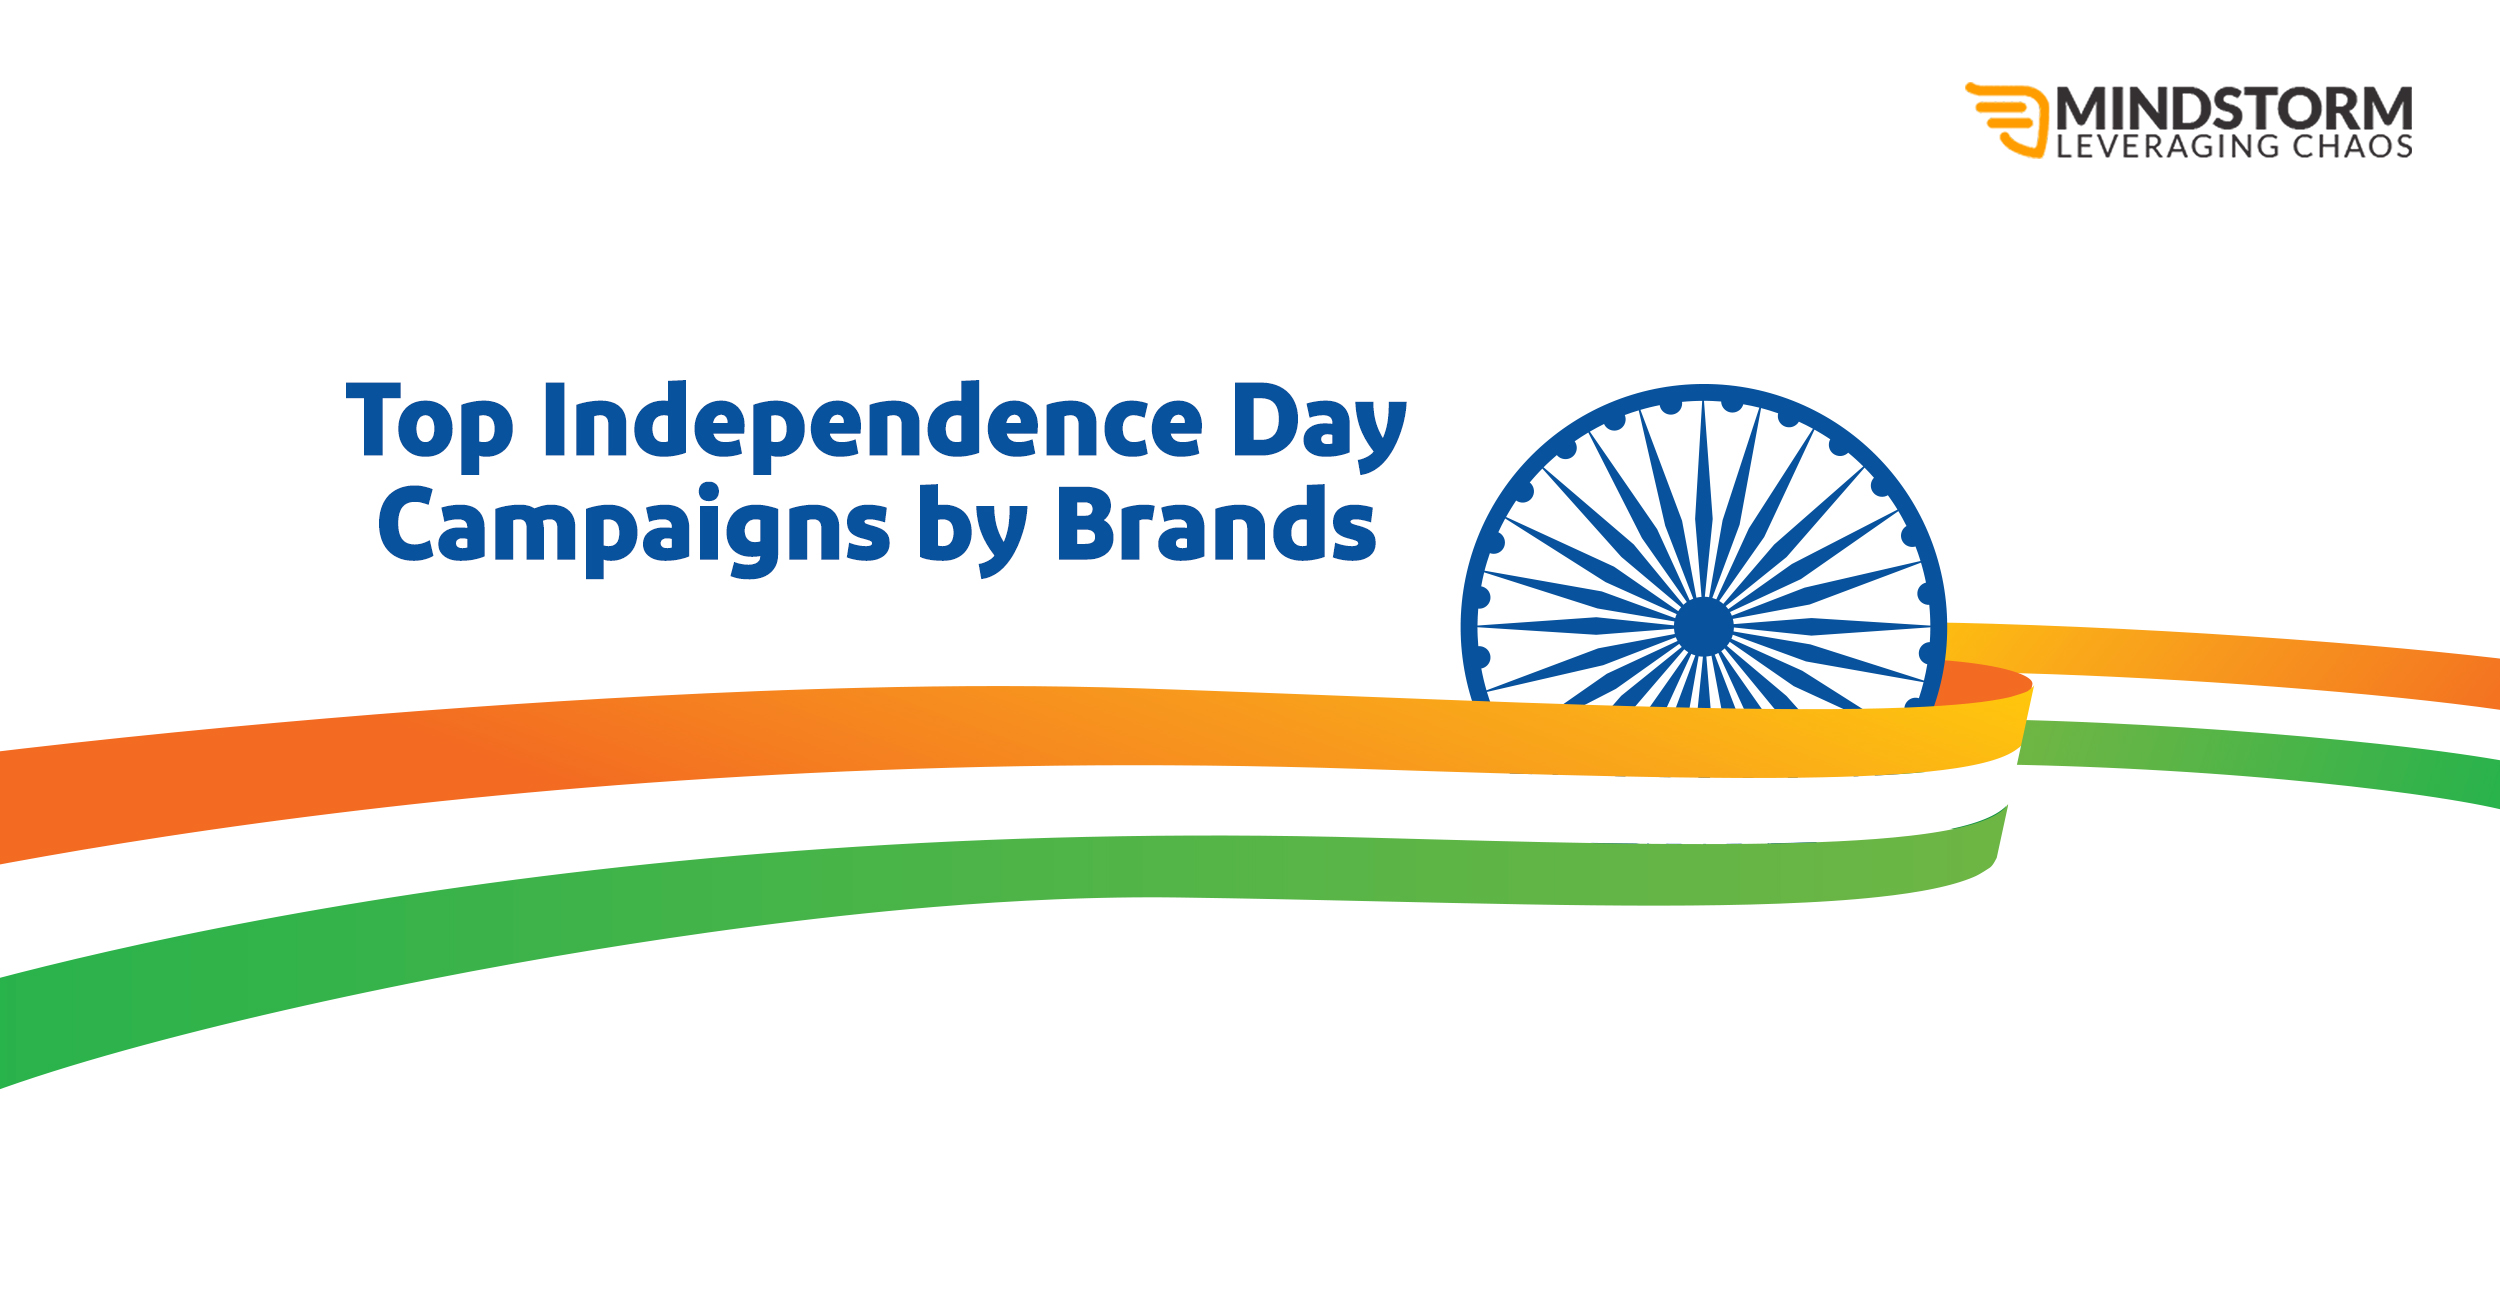 Top Independence Day Campaigns